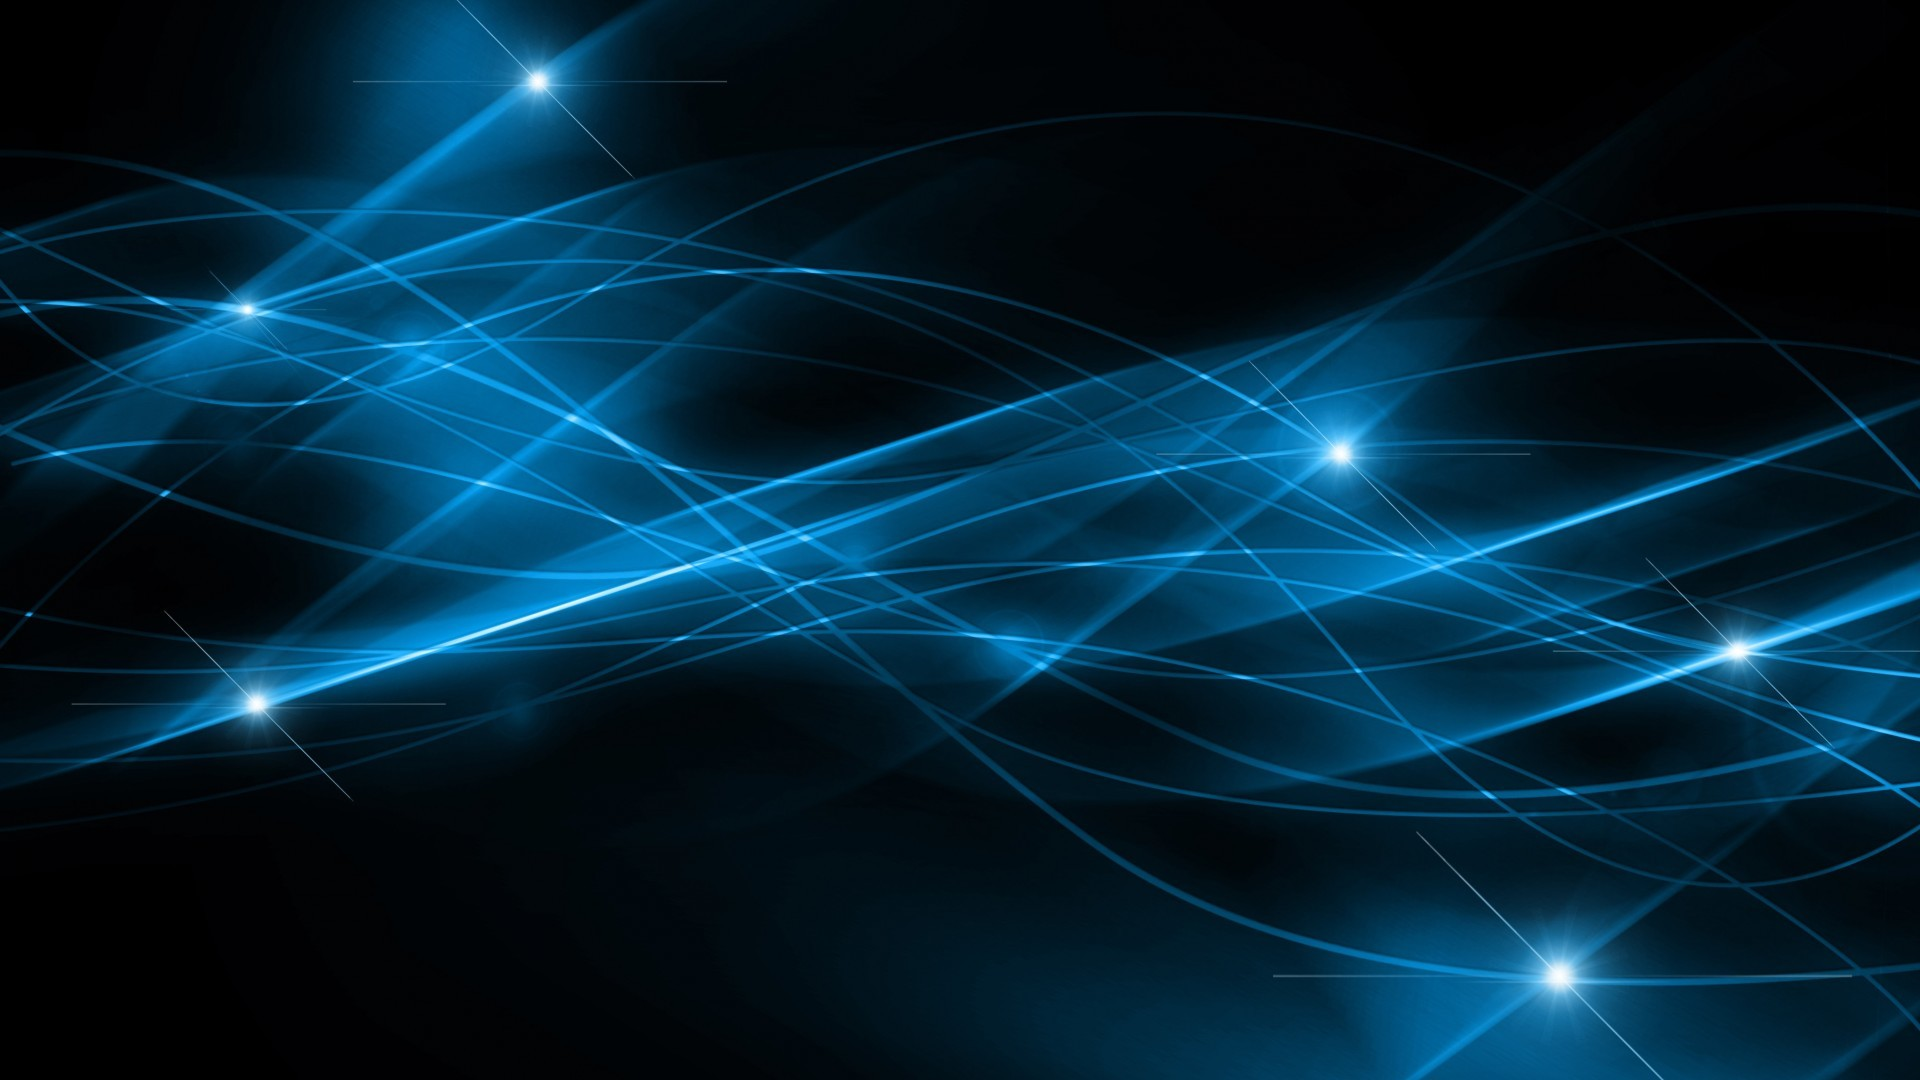 Dark Blue and Black Abstract Wallpaper